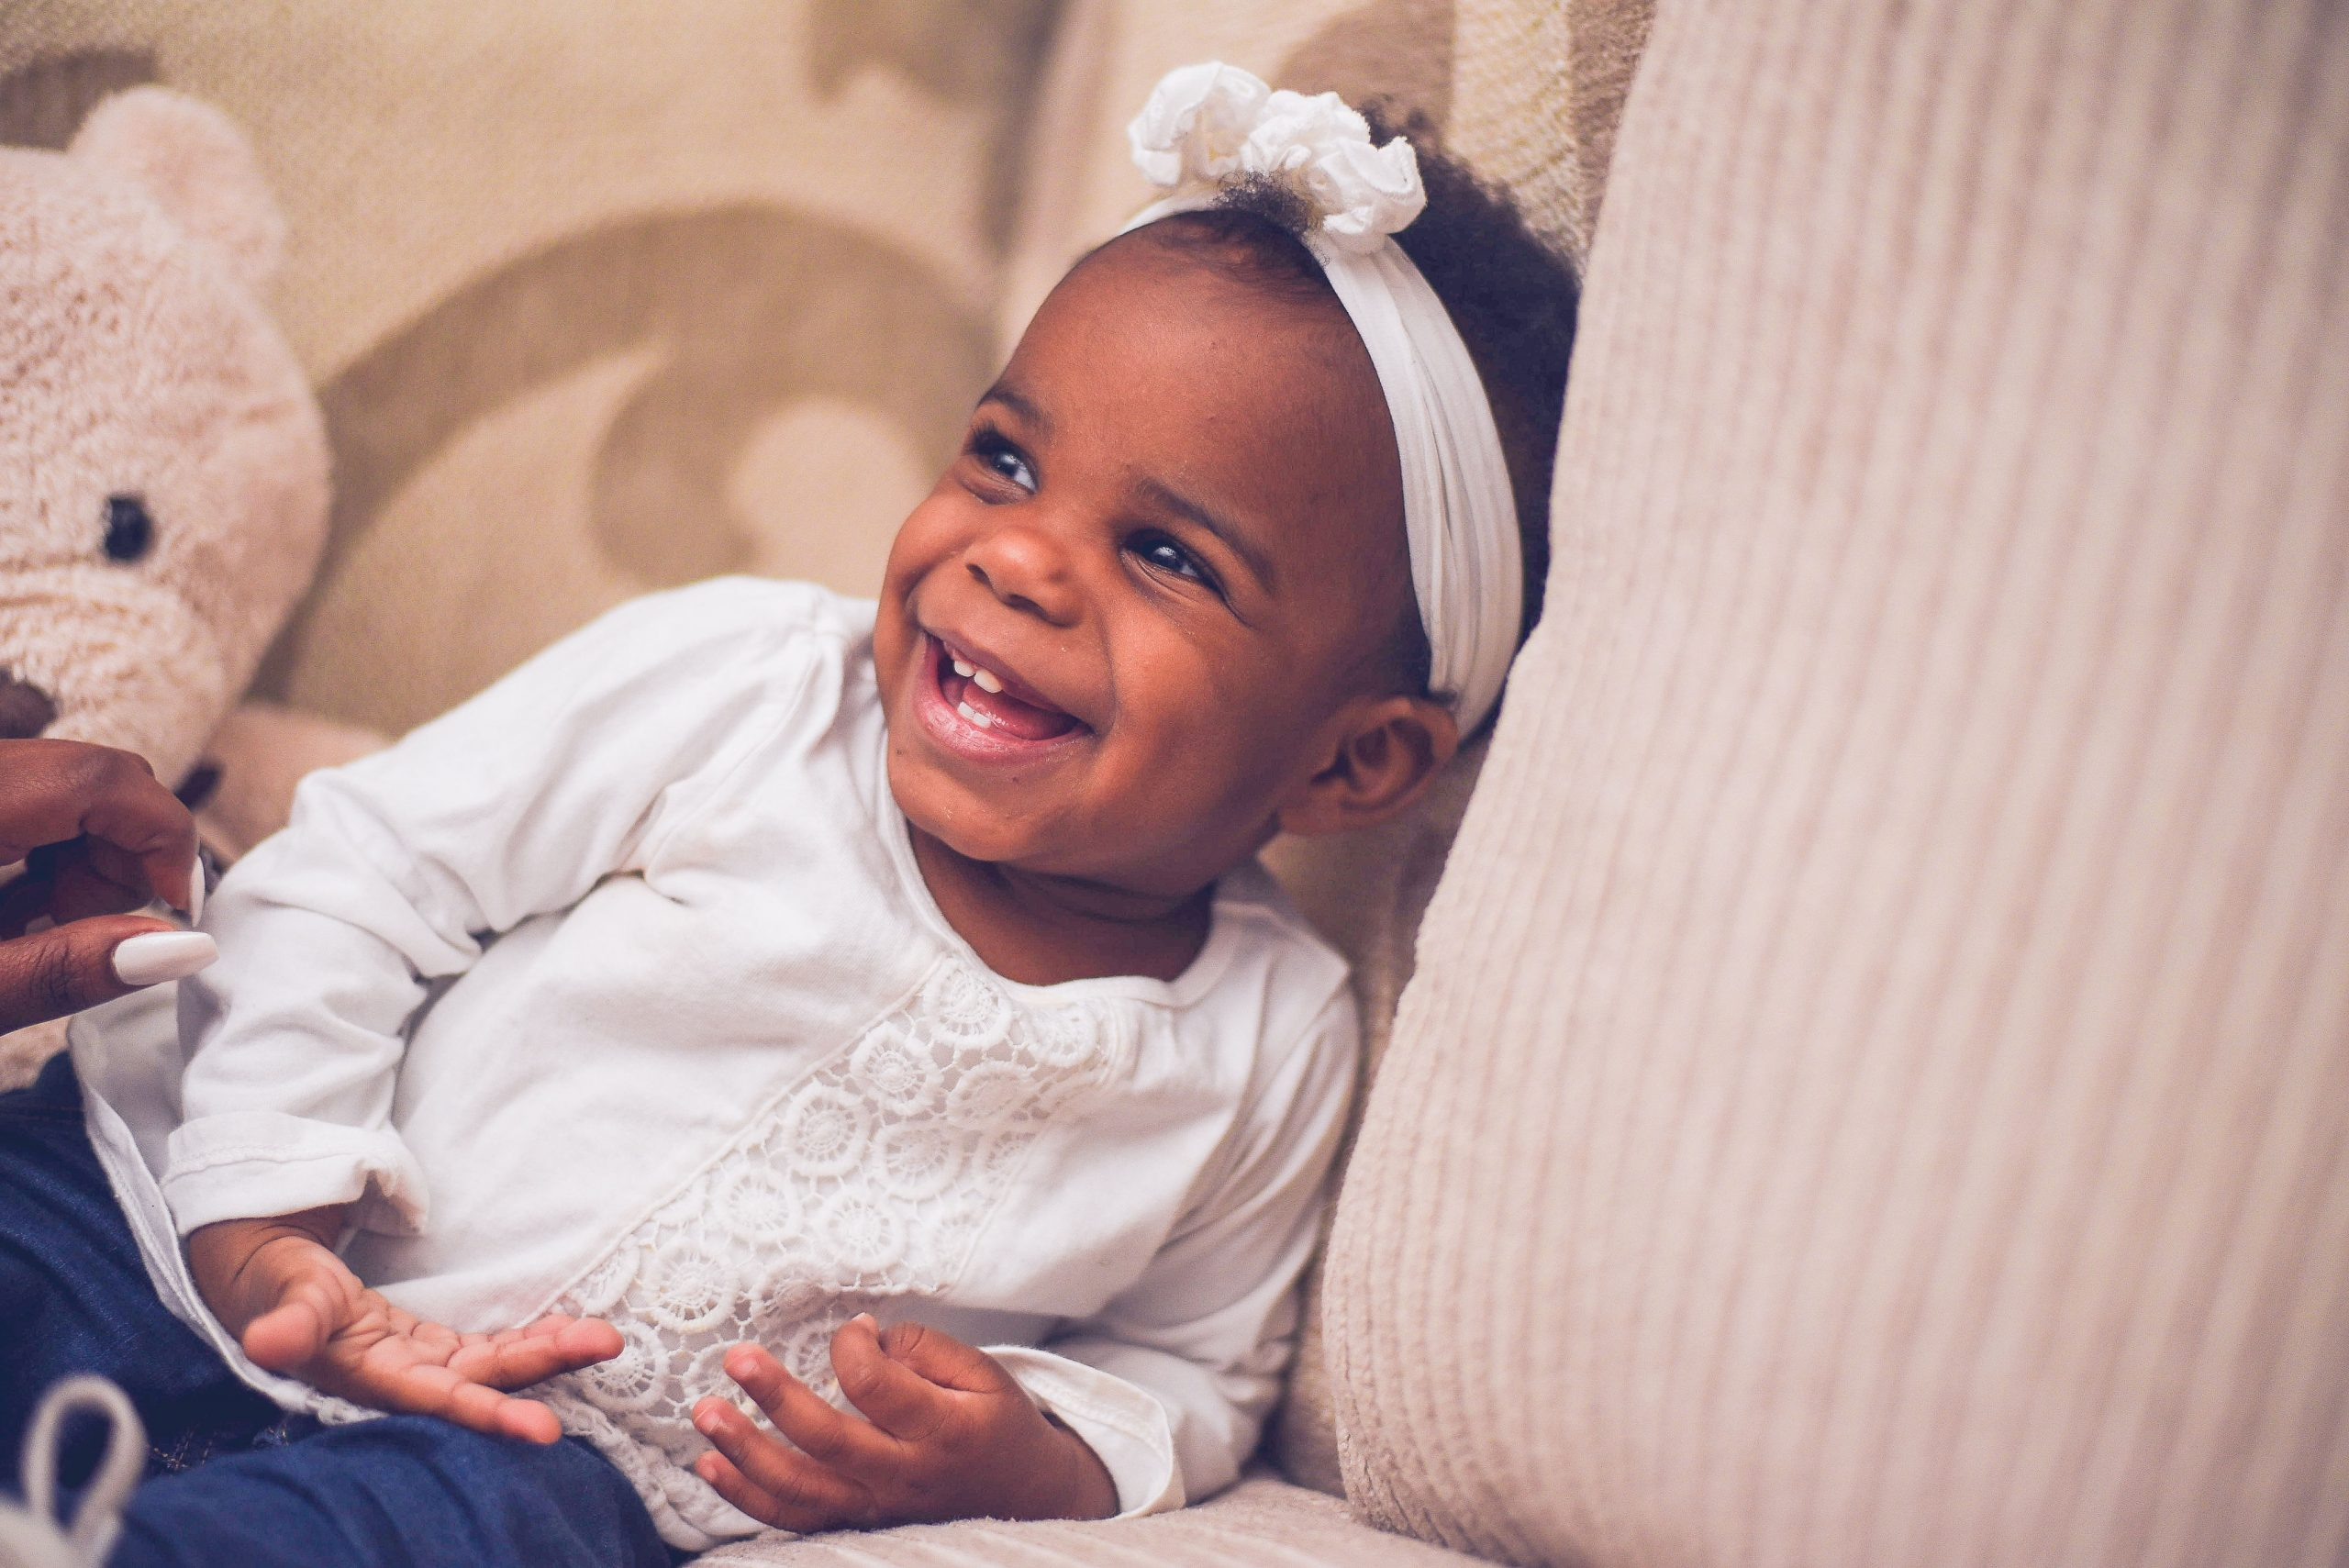 Smiling baby girl with a white bow making eye contact